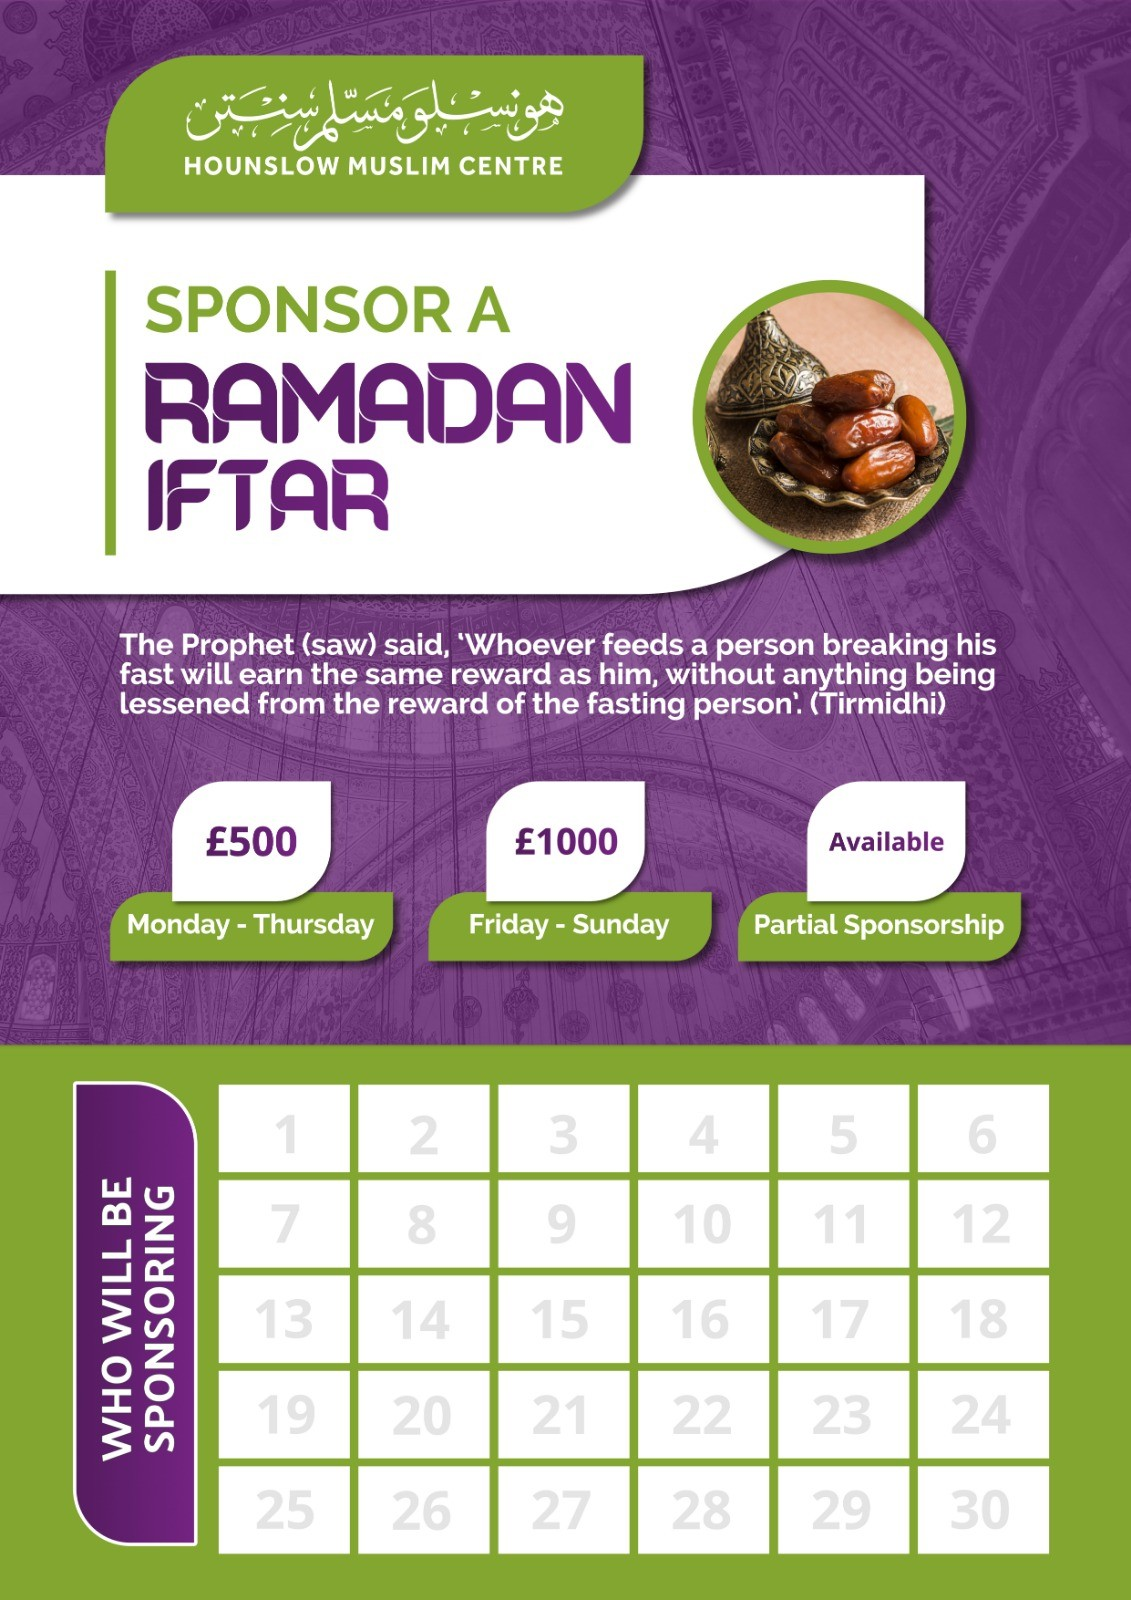 Sponsor a Ramadhan Iftar at Hounslow Muslim Centre